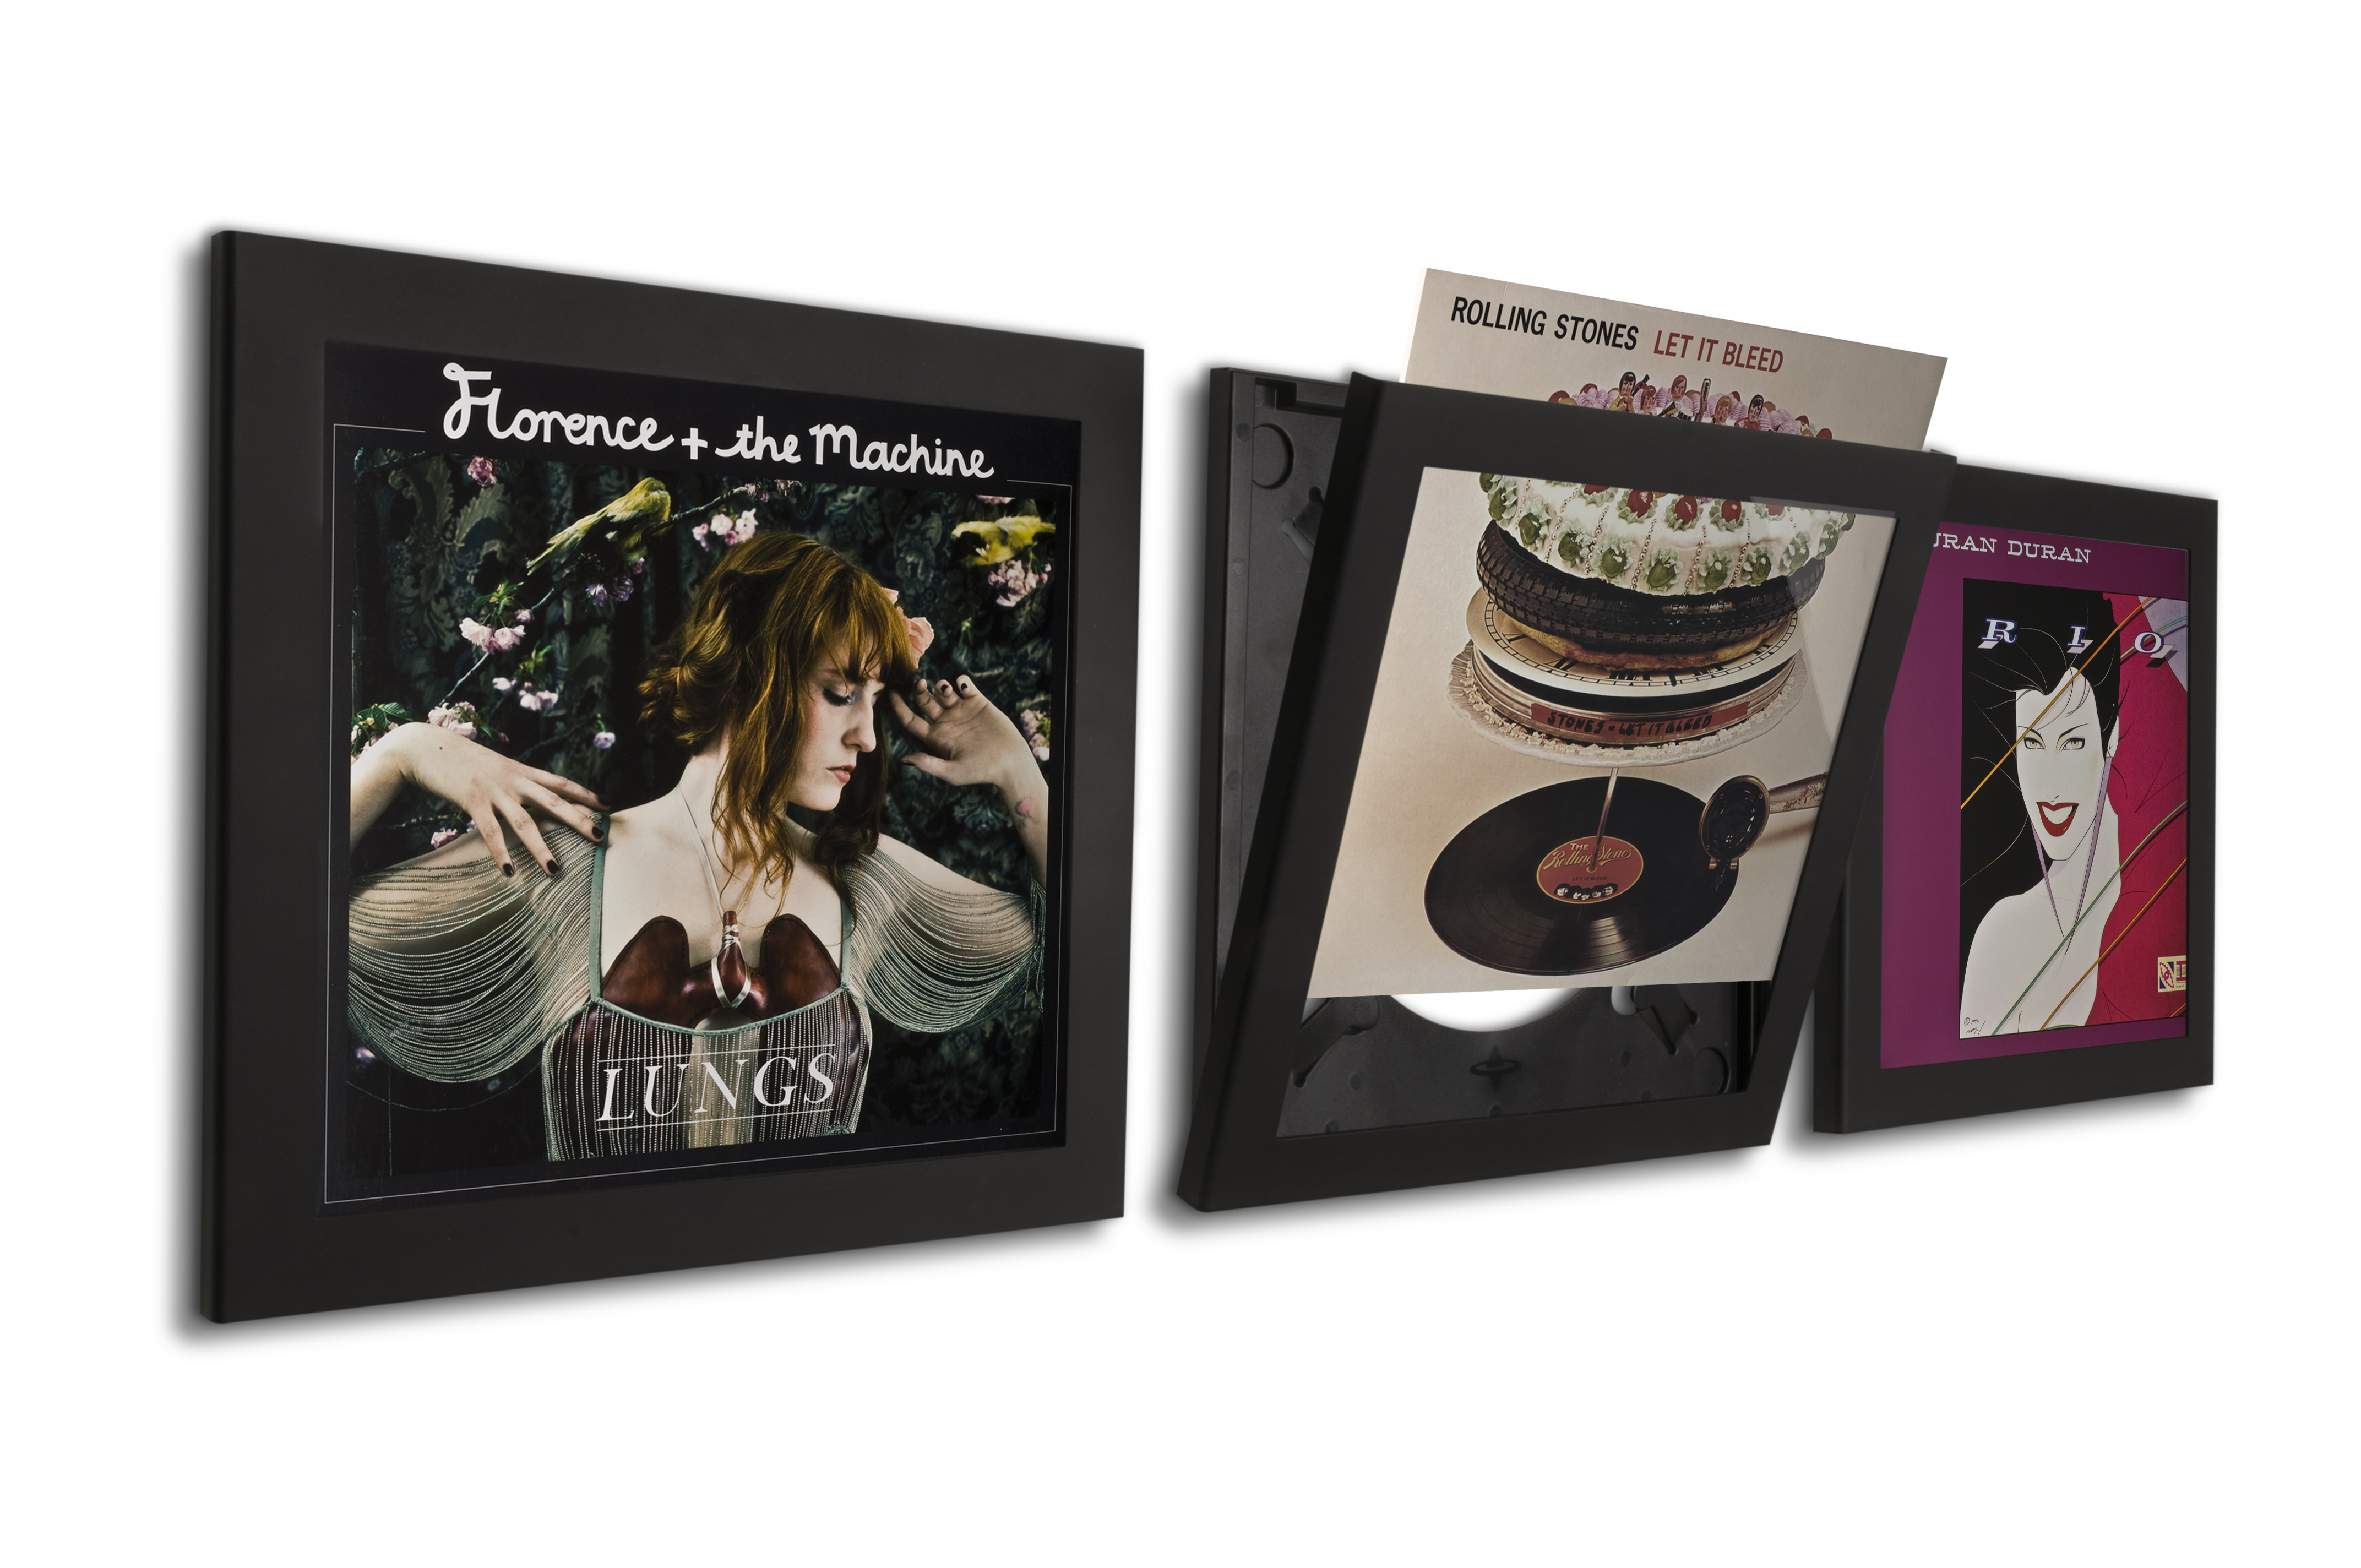 Black art vinyl play display record frame triple pack for Vinyl records decorations for wall